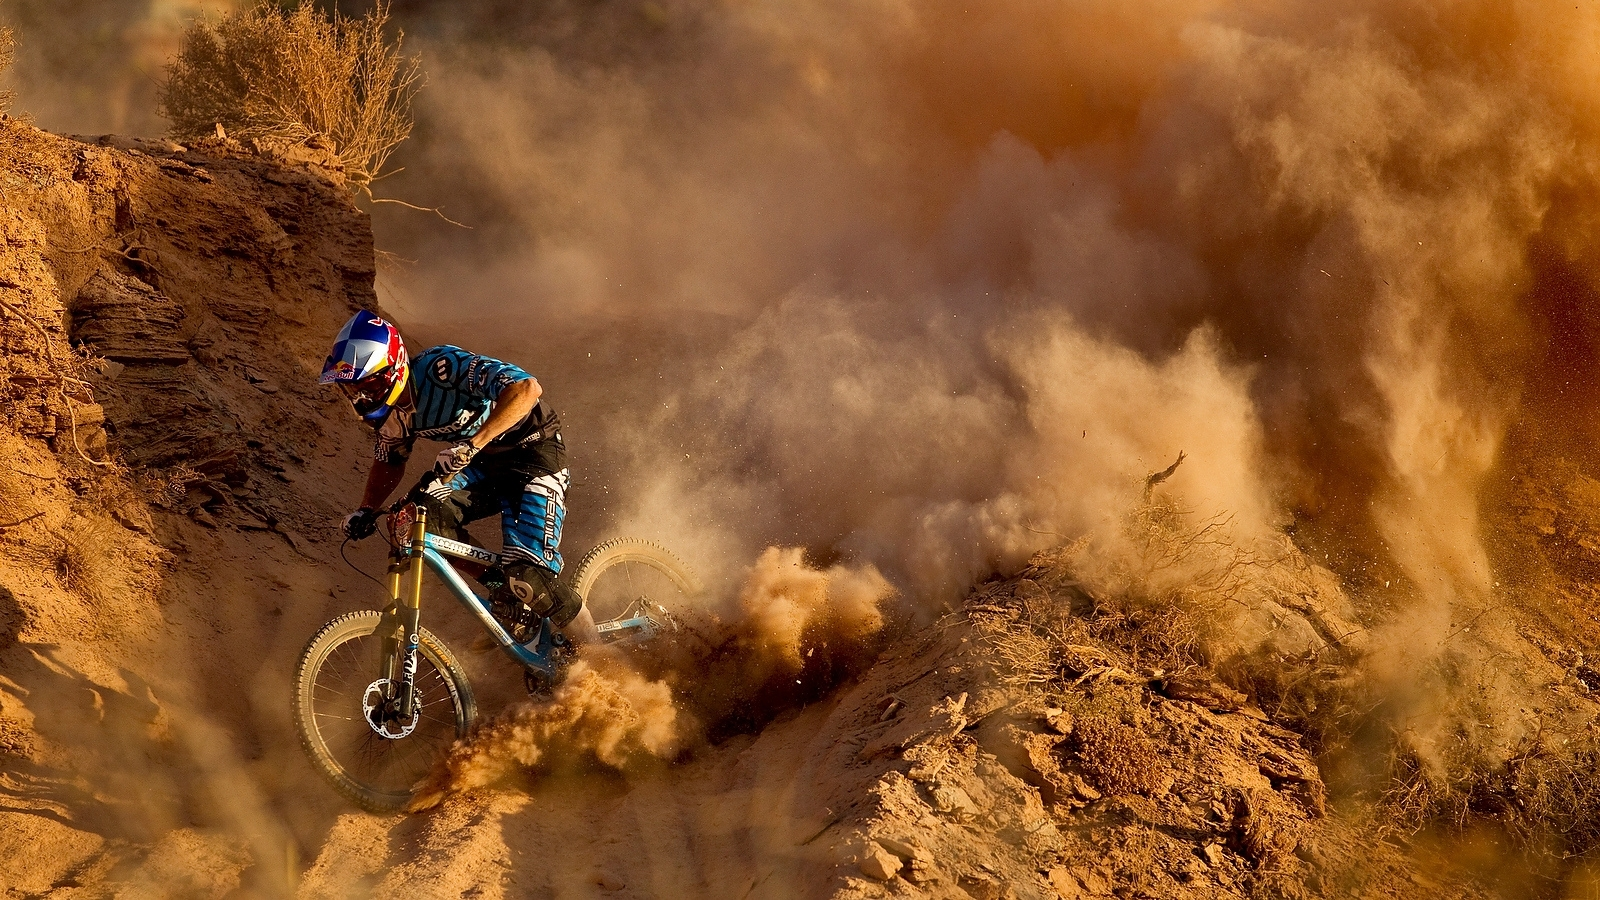 10 New Hd Mountain Biking Wallpaper Full Hd 19201080 For Pc Desktop